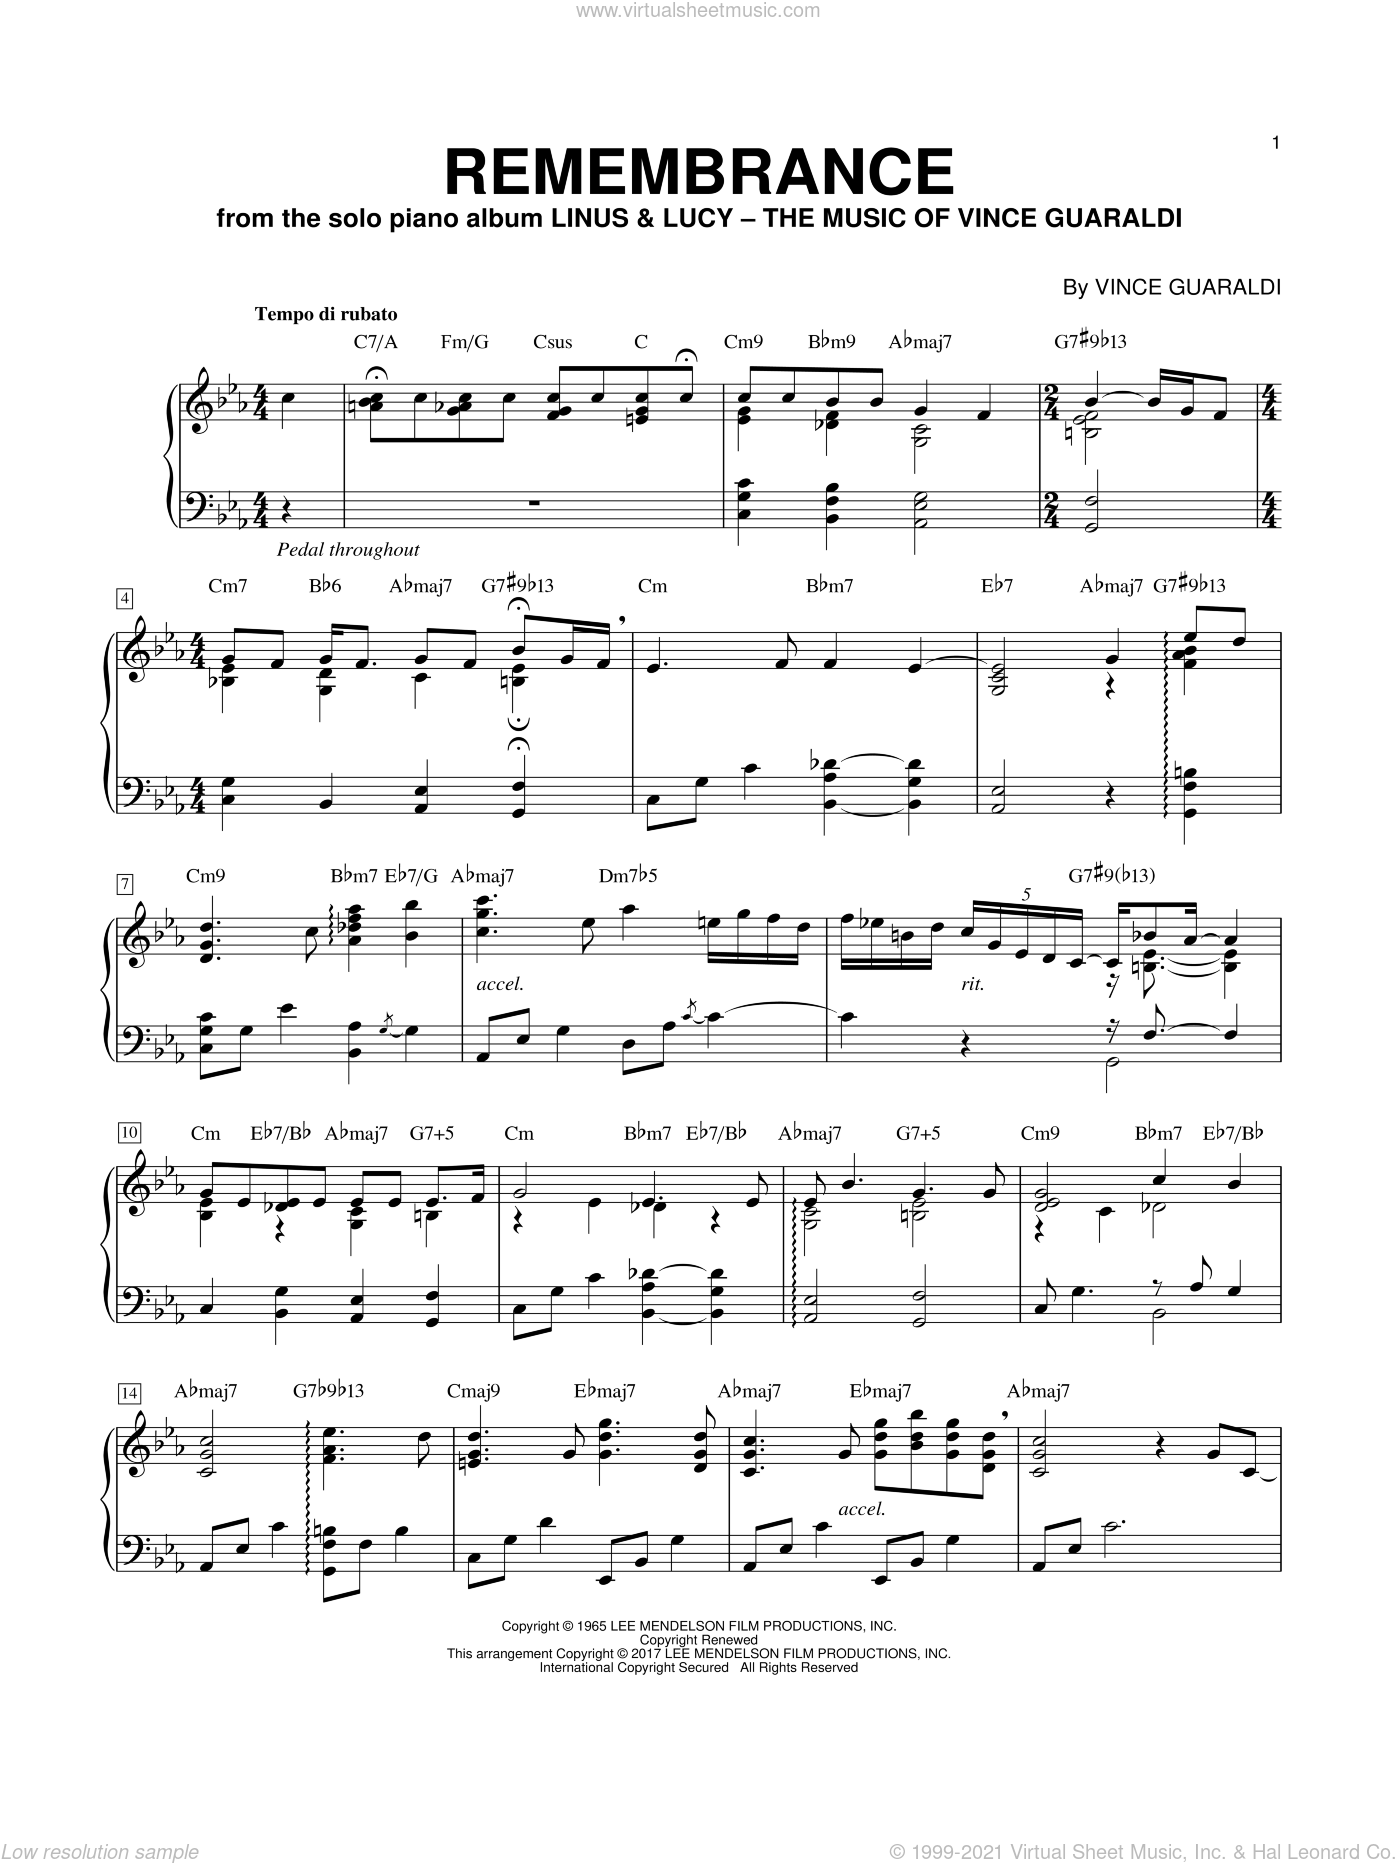 Remembrance (In Remembrance Of Me) sheet music for piano solo by George Winston and Vince Guaraldi, intermediate skill level